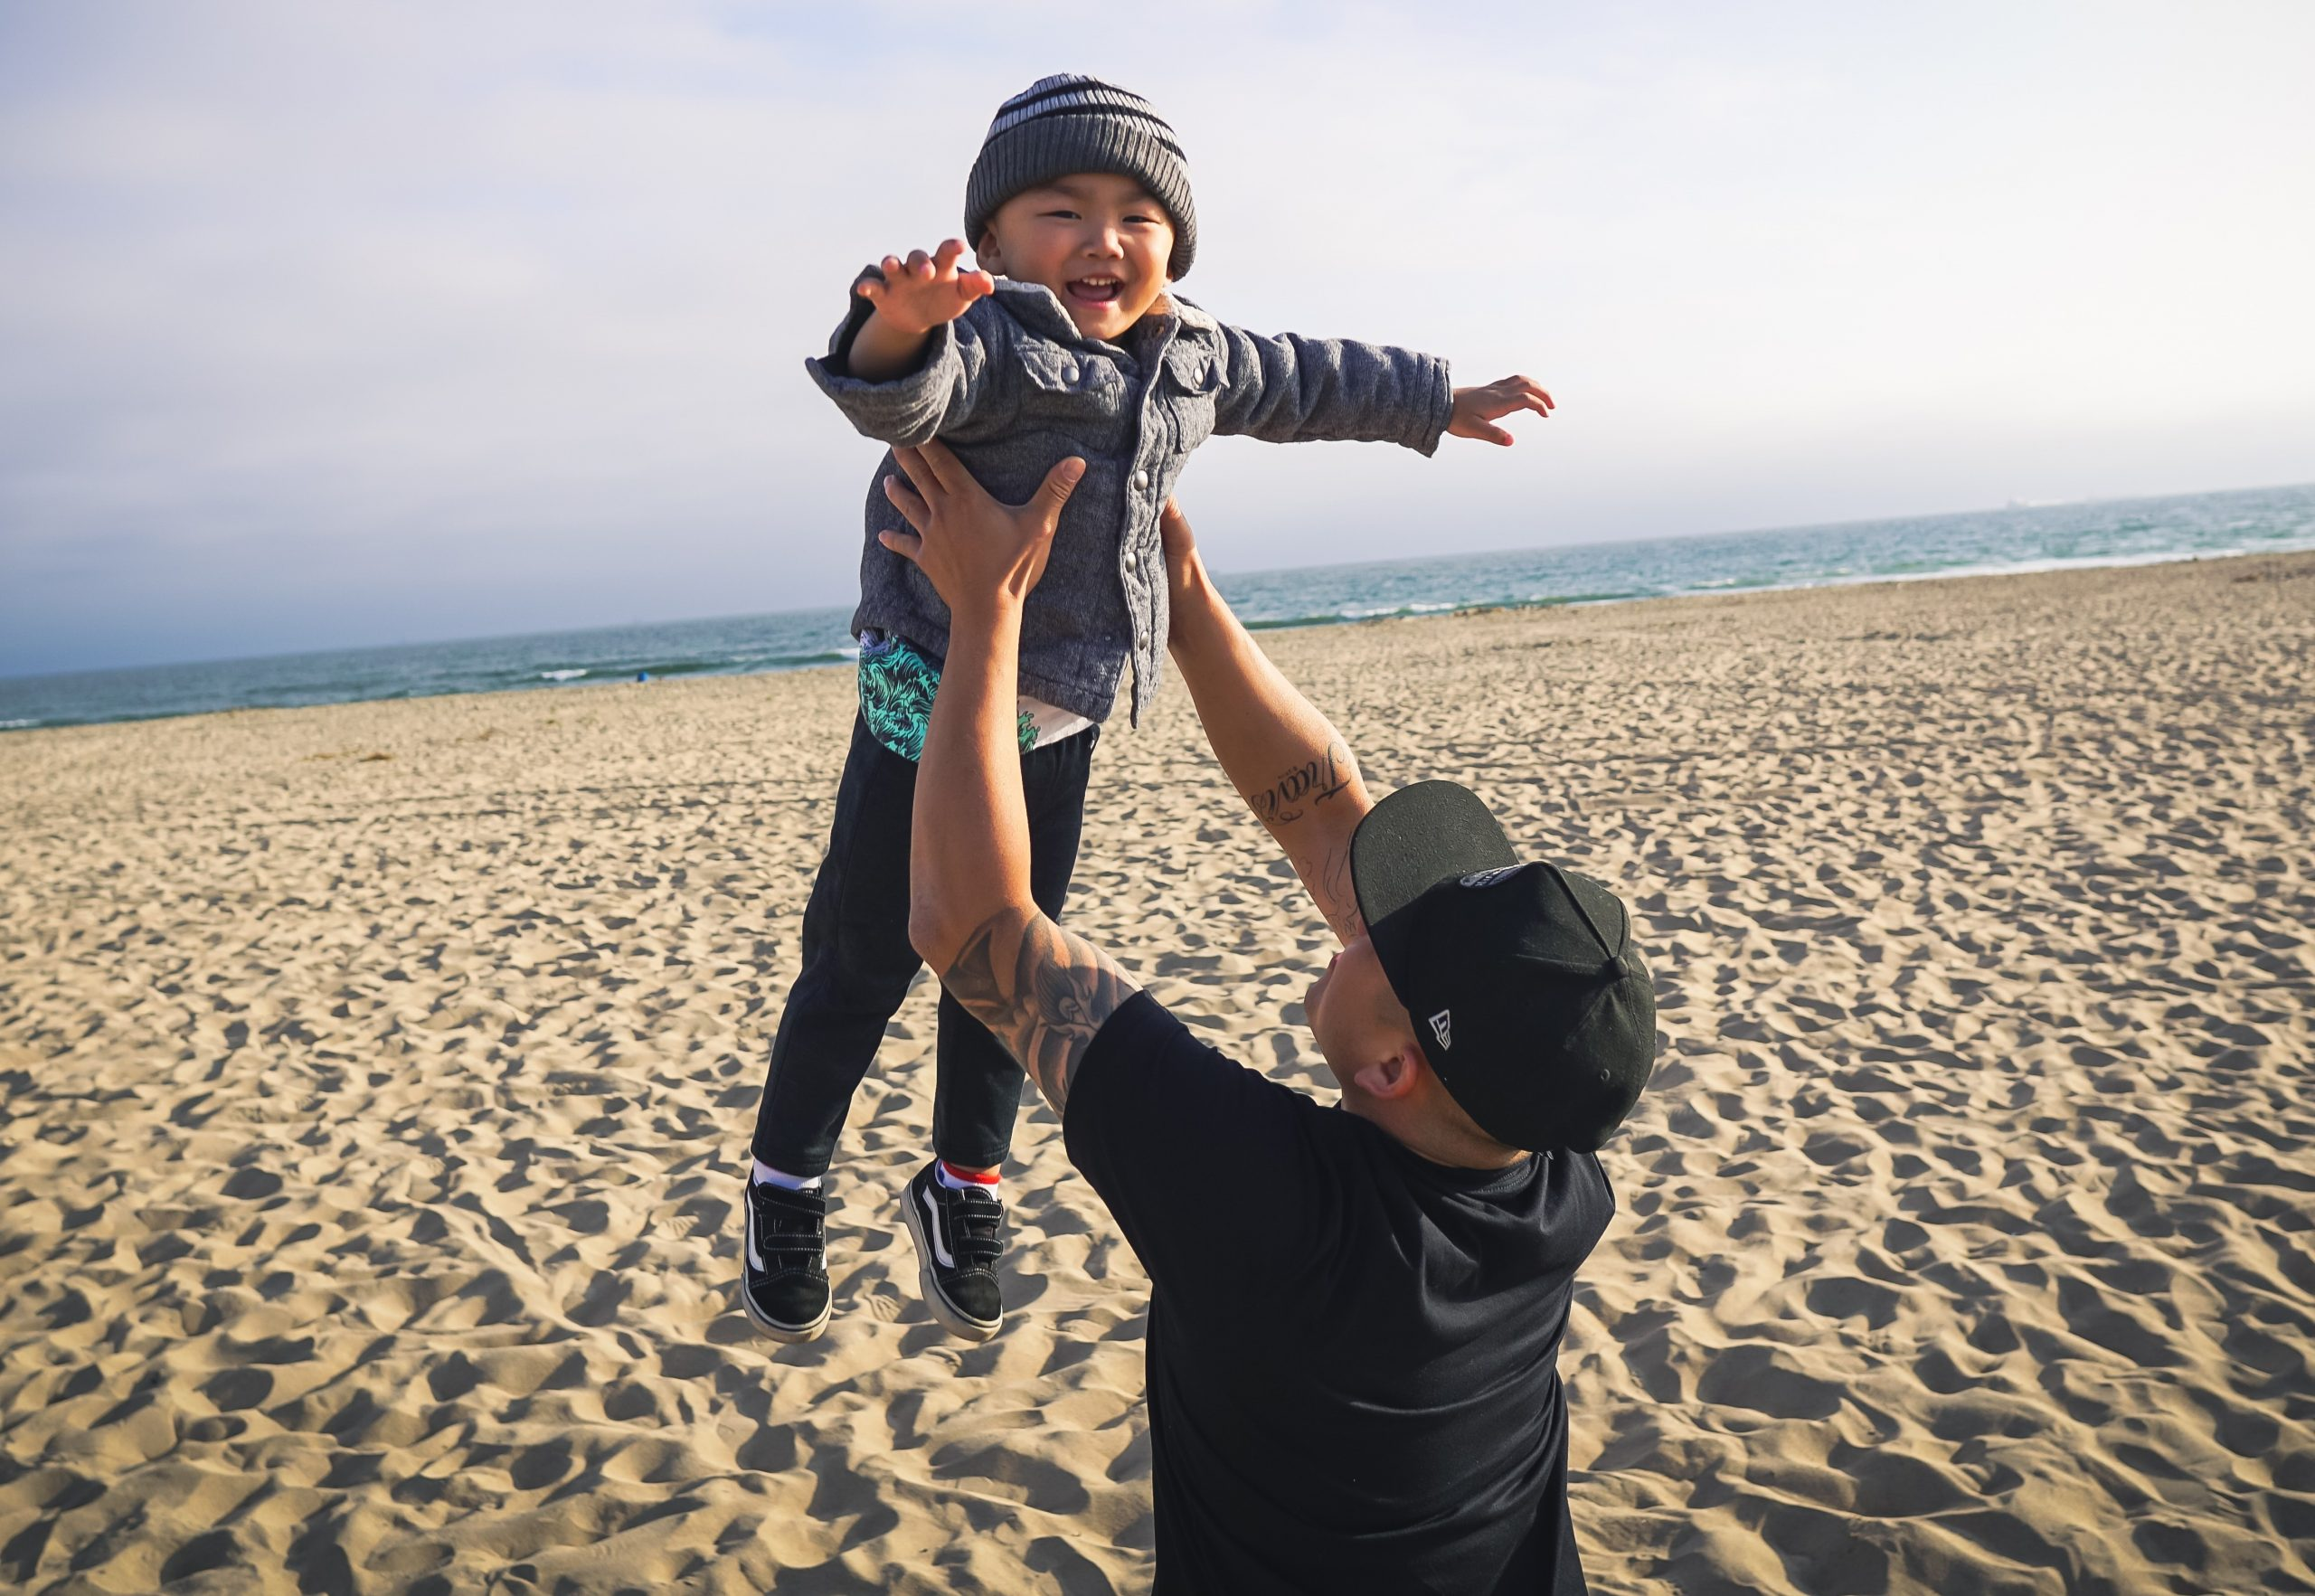 man on beach throwing toddler into the air playfully